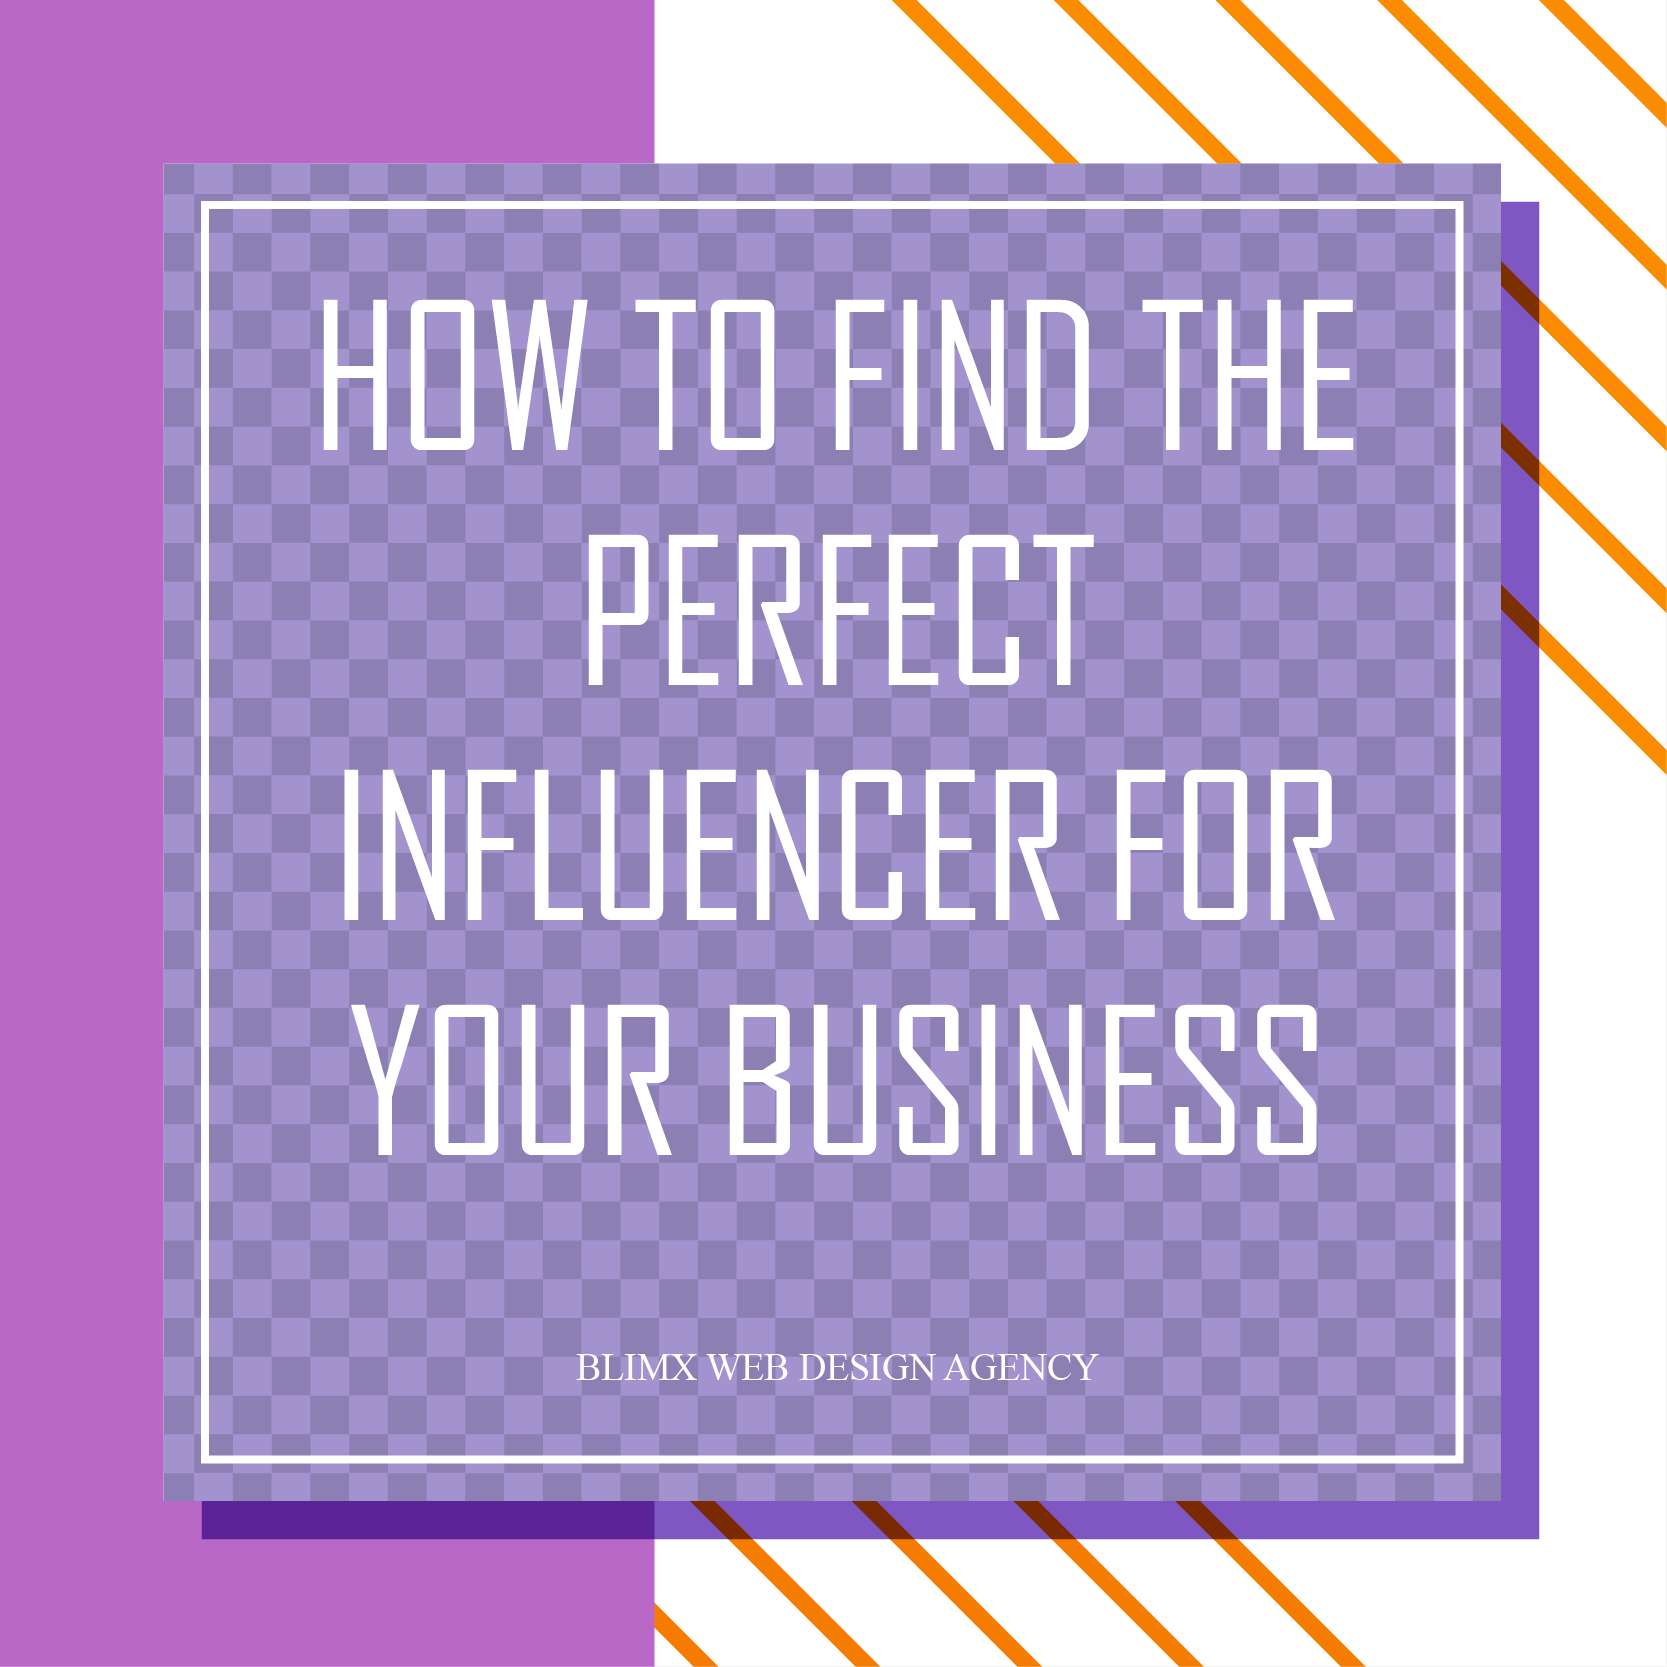 How to Find the Perfect Influencer for your Business